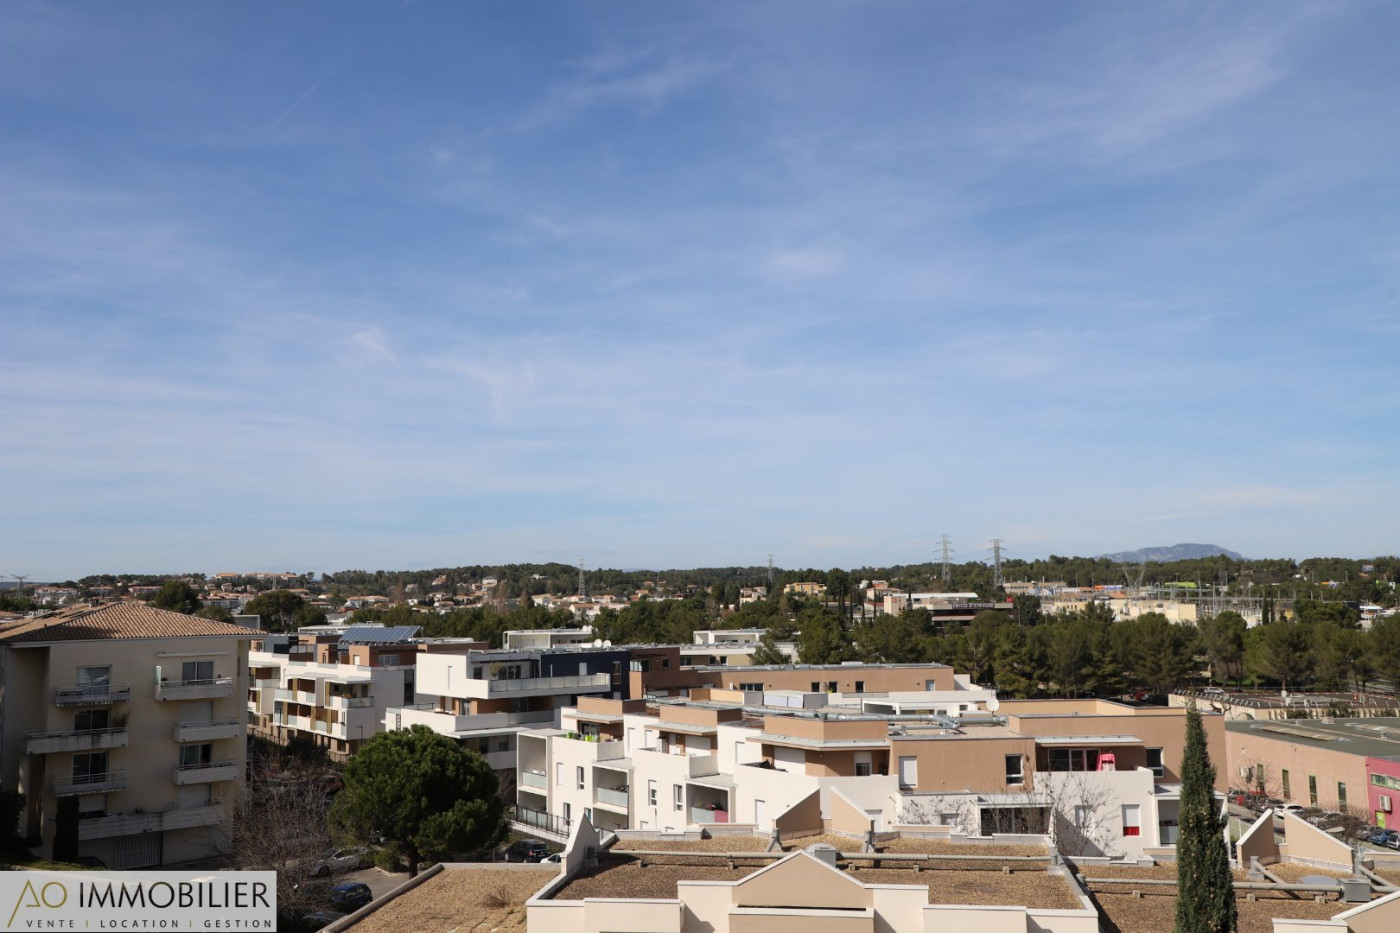 A vendre Montpellier 34579309 Ao immobilier